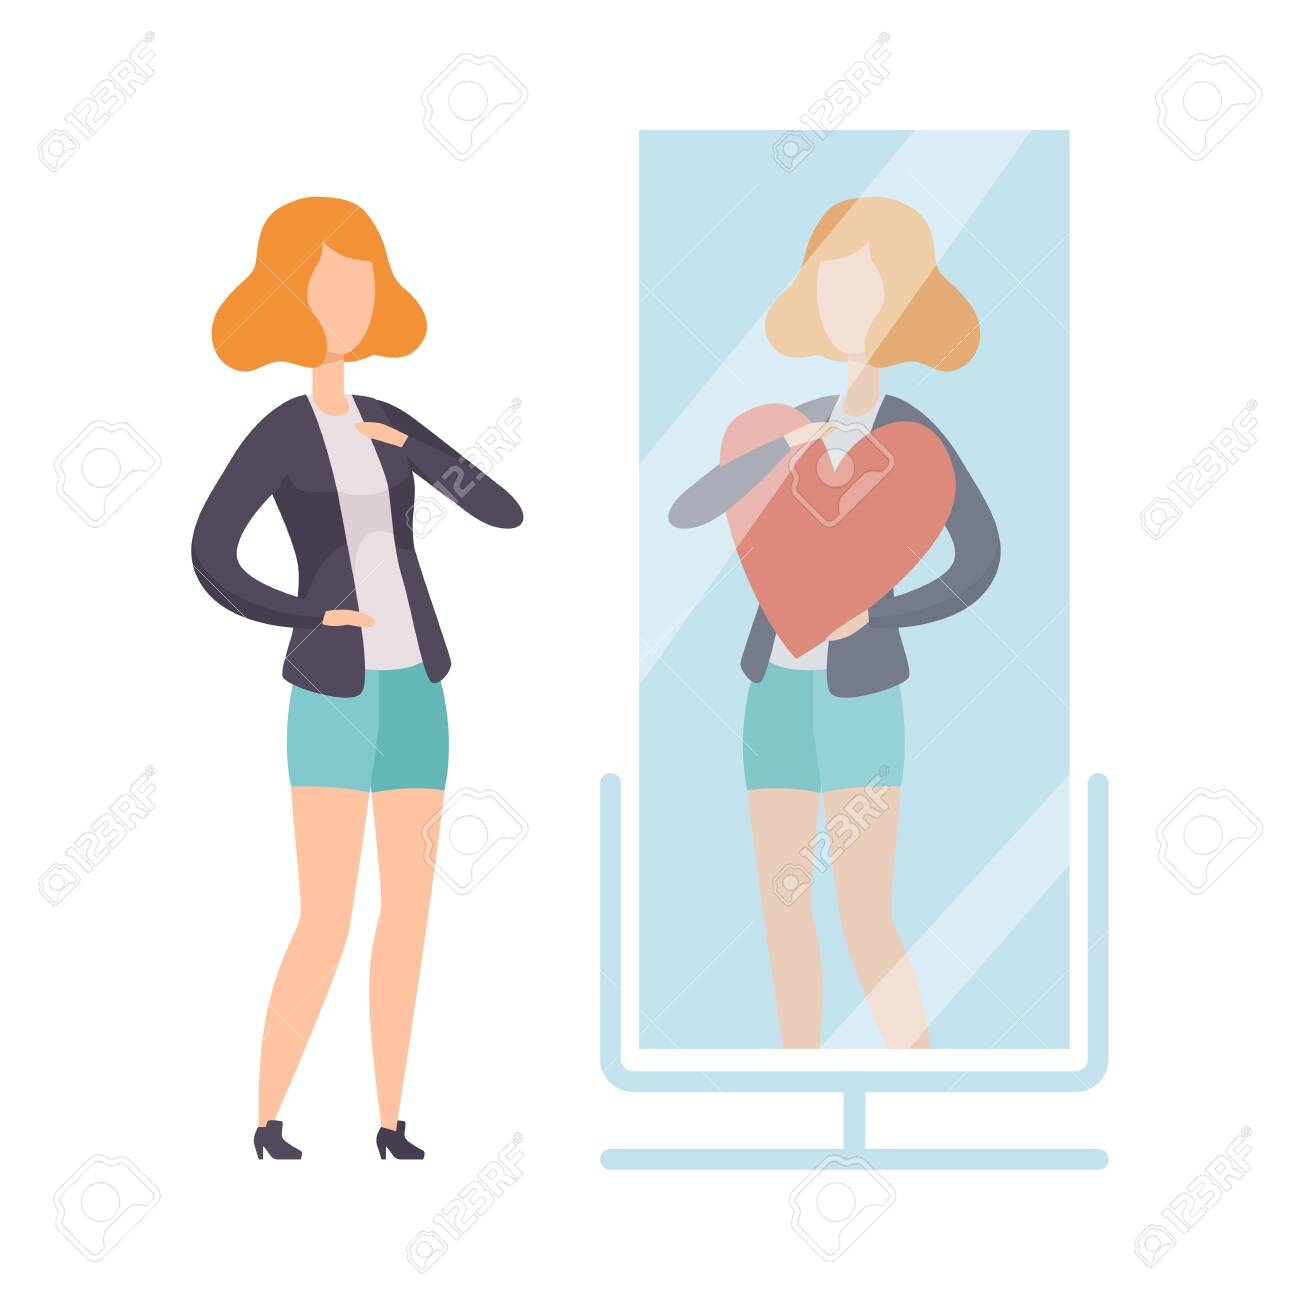 Narcissistic Woman Character Looking at Mirror and Seeing in Reflection of Herself with Red Heart, Girl Overestimate Herself, Self Confidence, Motivation Vector Illustration on White Background. - 128165187